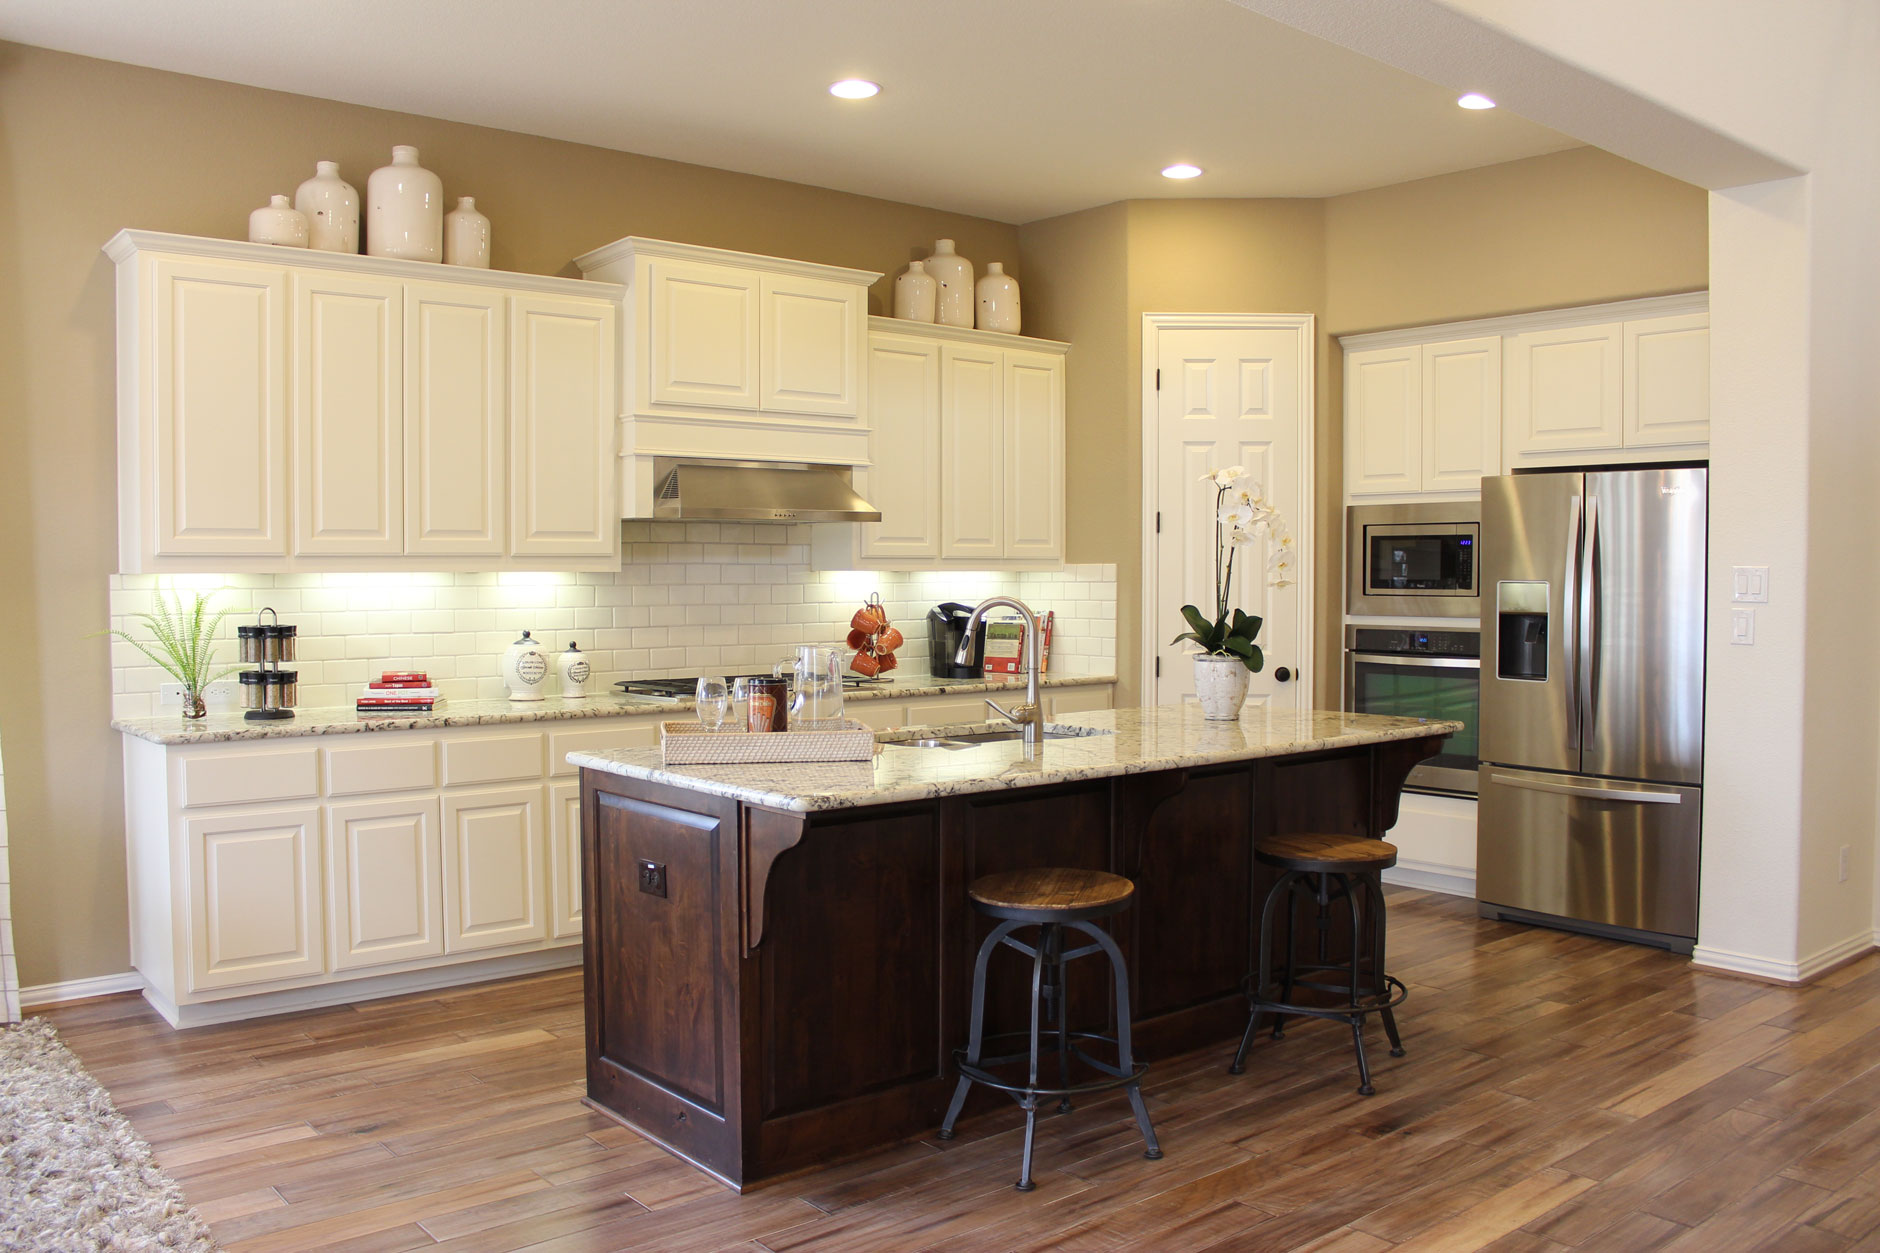 burrows cabinets kitchen in knotty alder with verona finish and appliance end panels - Choosing Kitchen Cabinet Colors